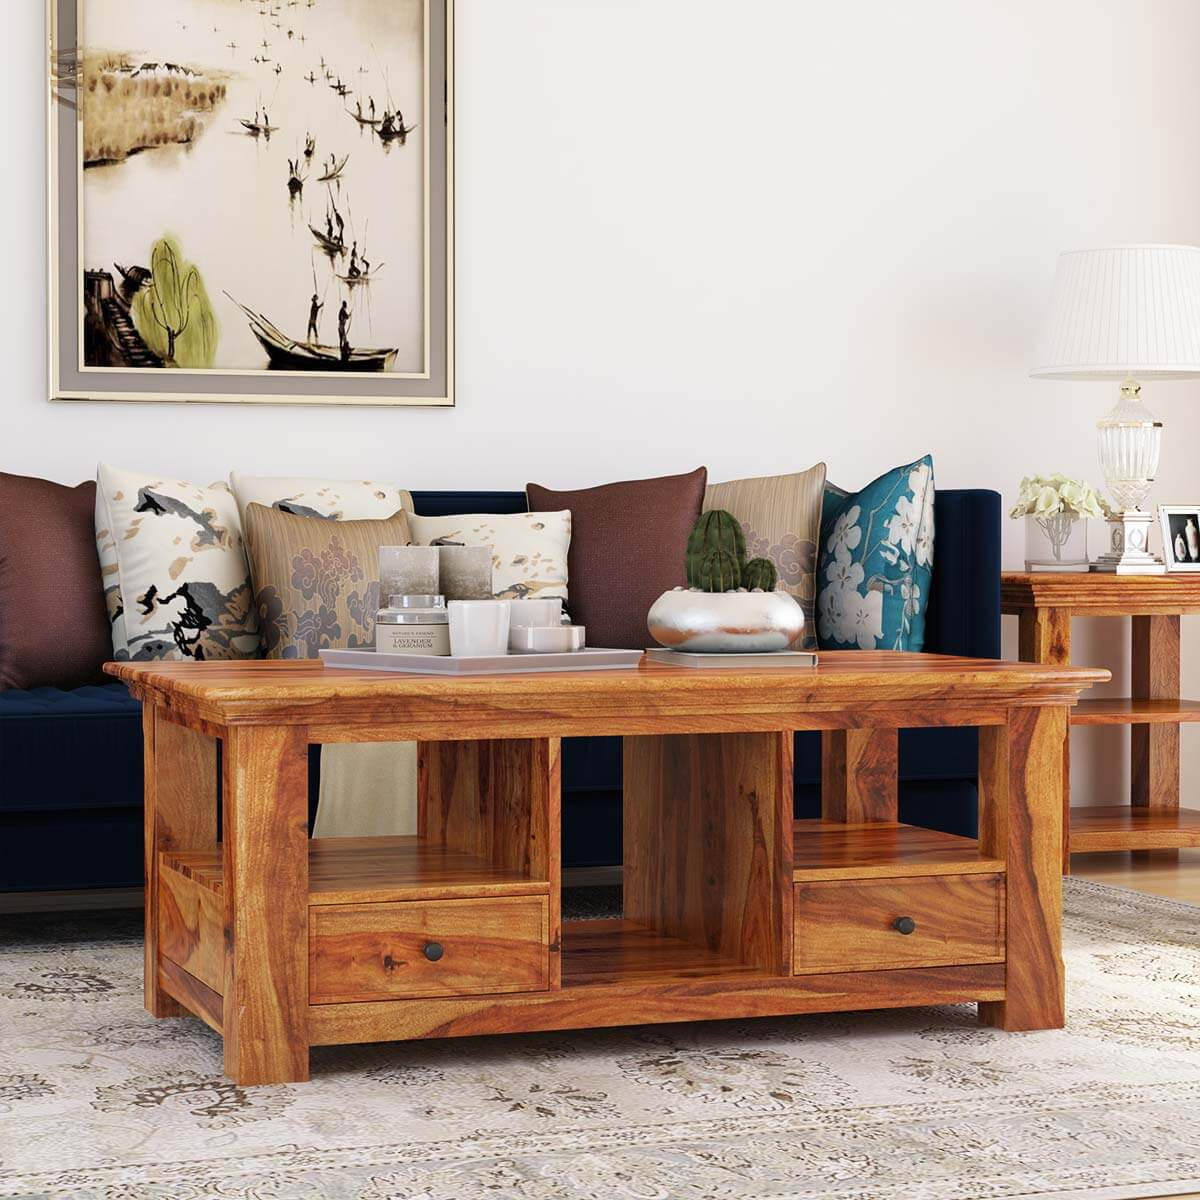 Santa Cruz Shaker Style Multi Compartment Coffee Table